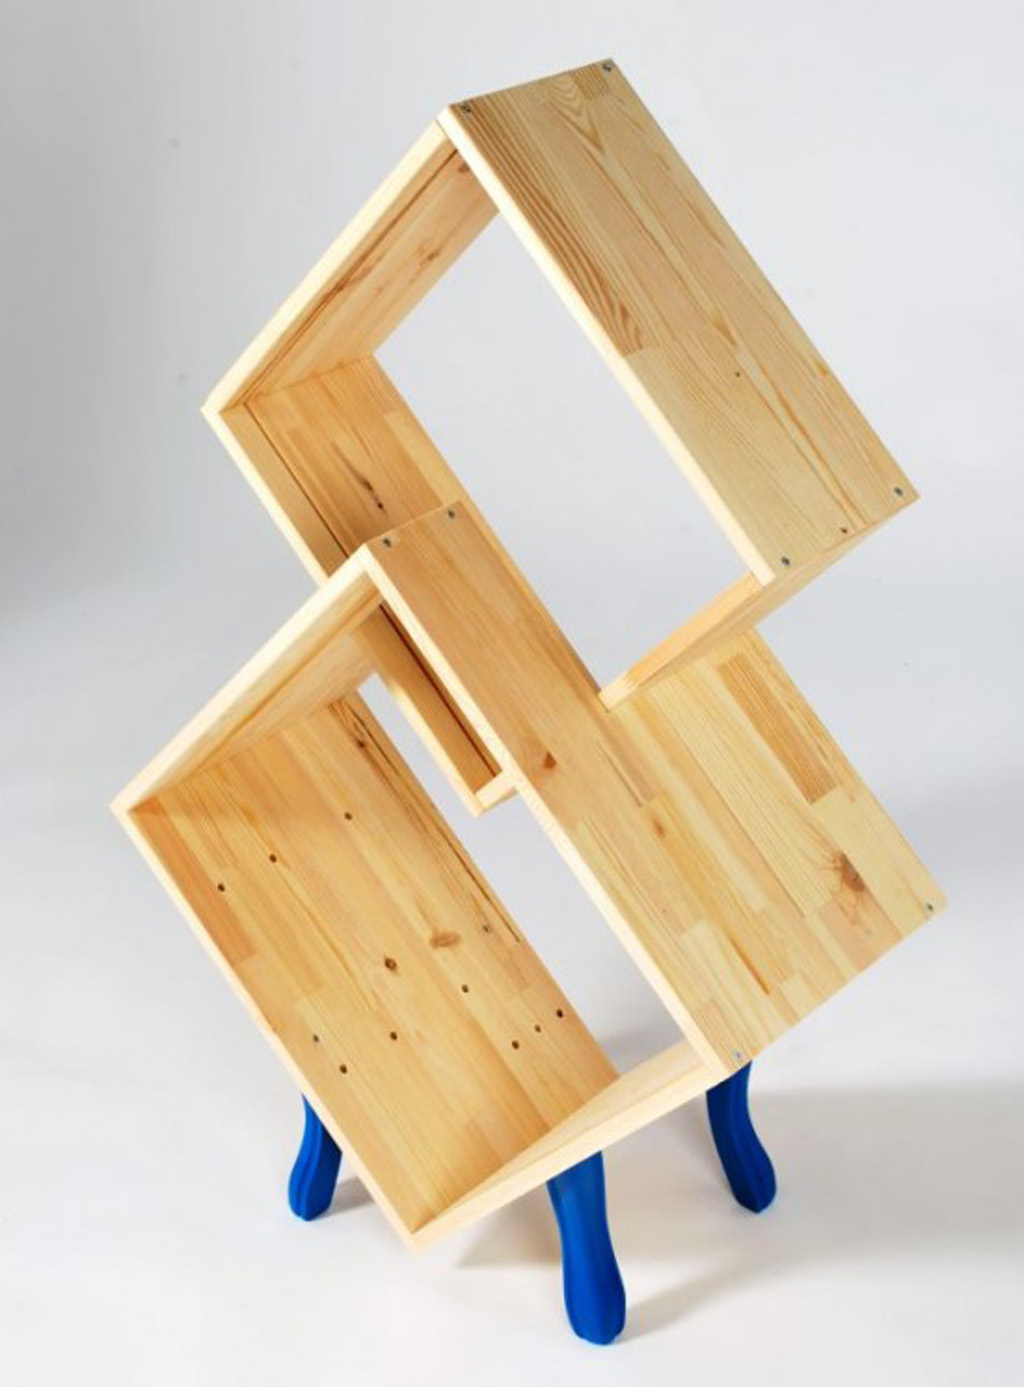 Unique bookshelf designs plans Creative wooden furniture